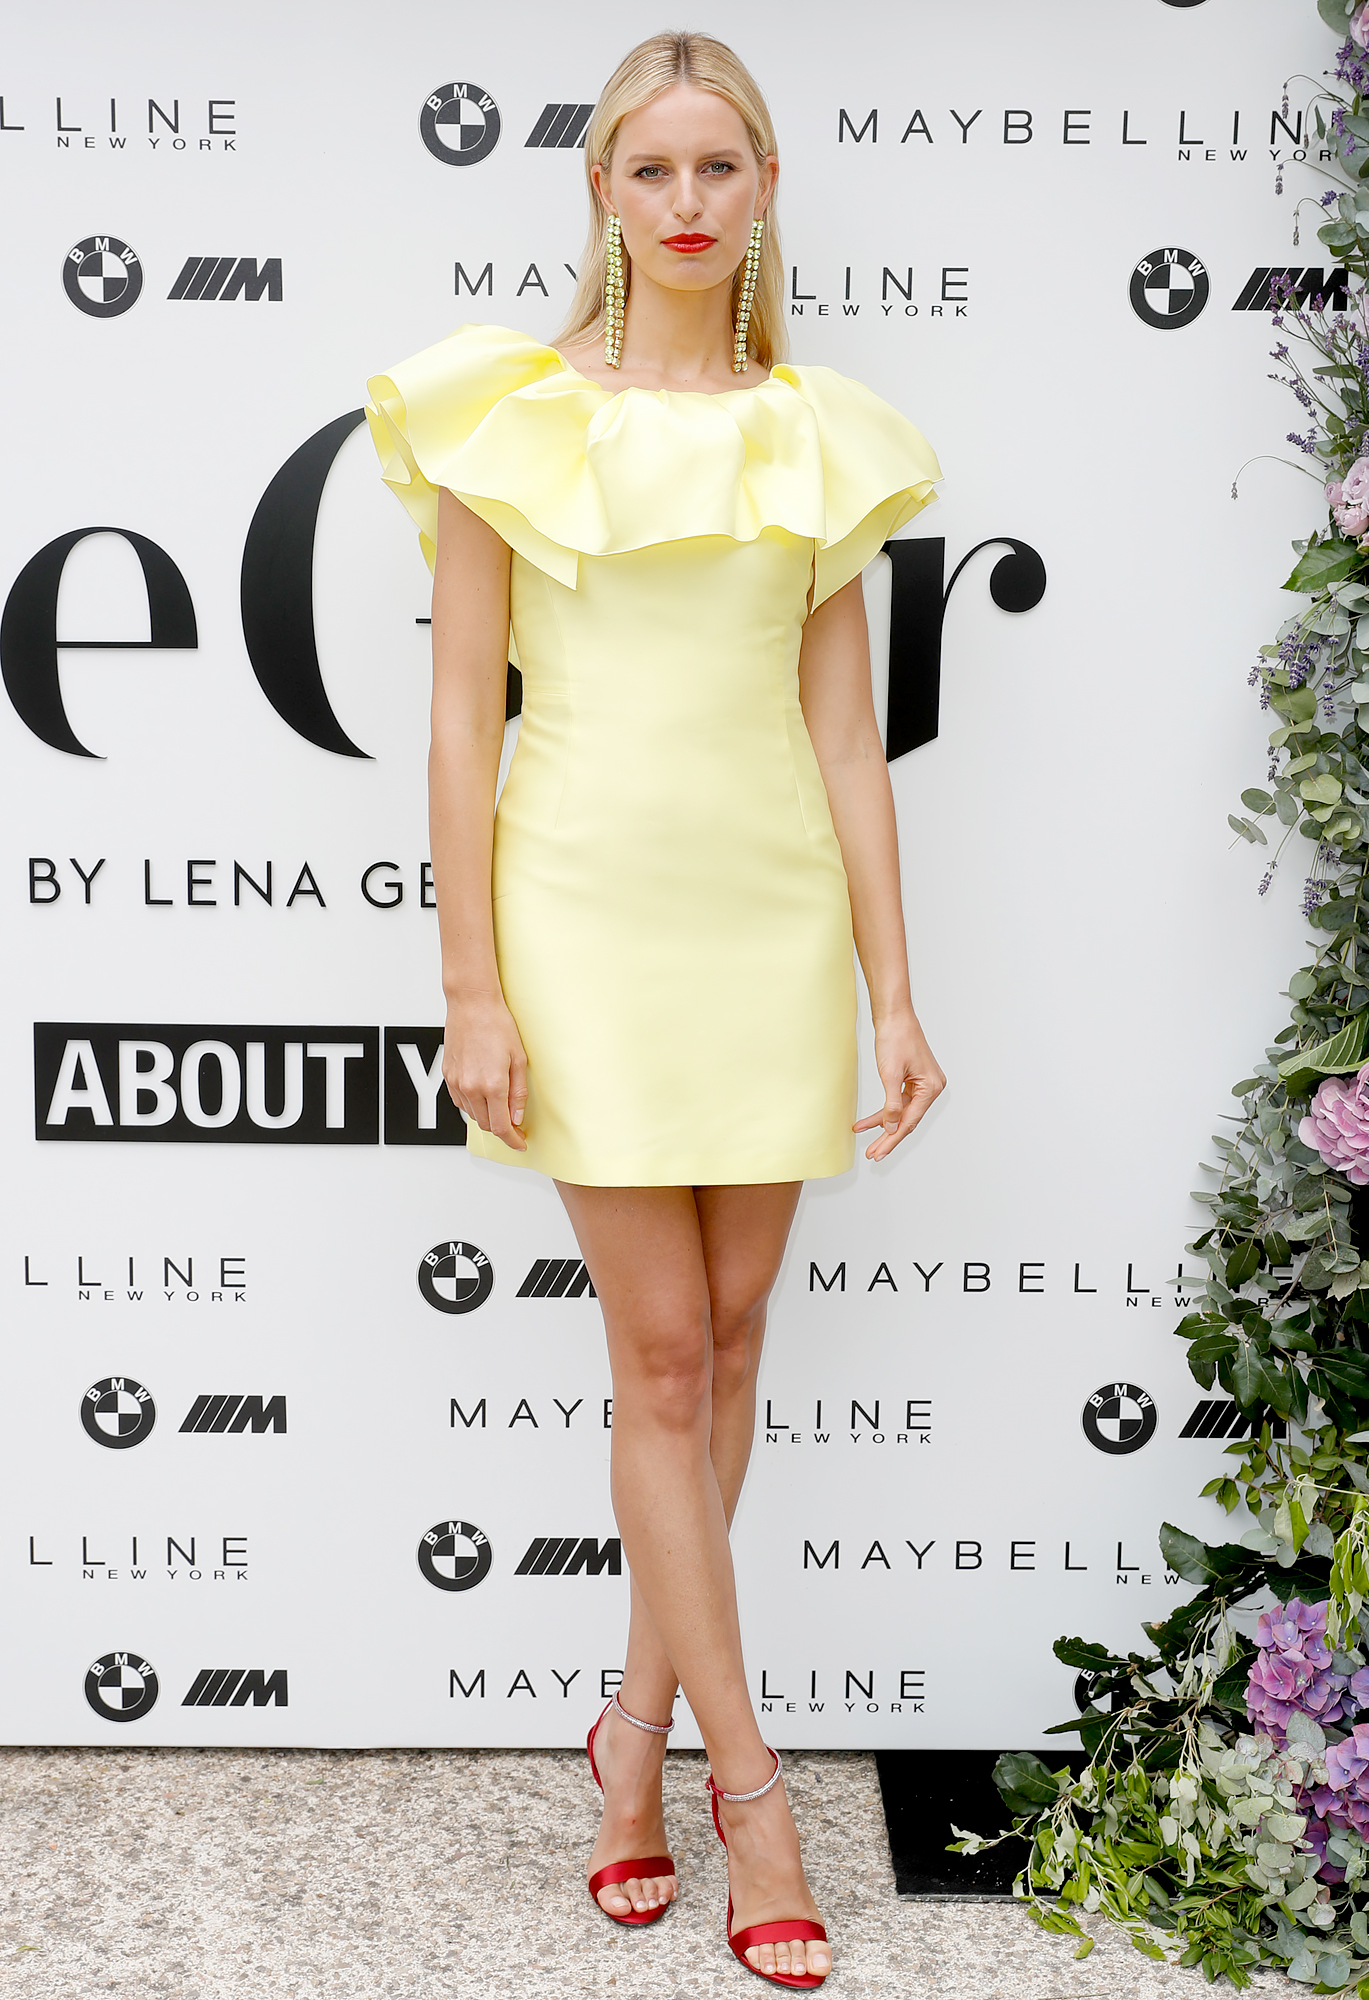 Karolina-Kurkova - The blonde beauty kept things short and sweet in a yellow mini at the Wellbeing Summer Lunch on Wednesday, May 22.